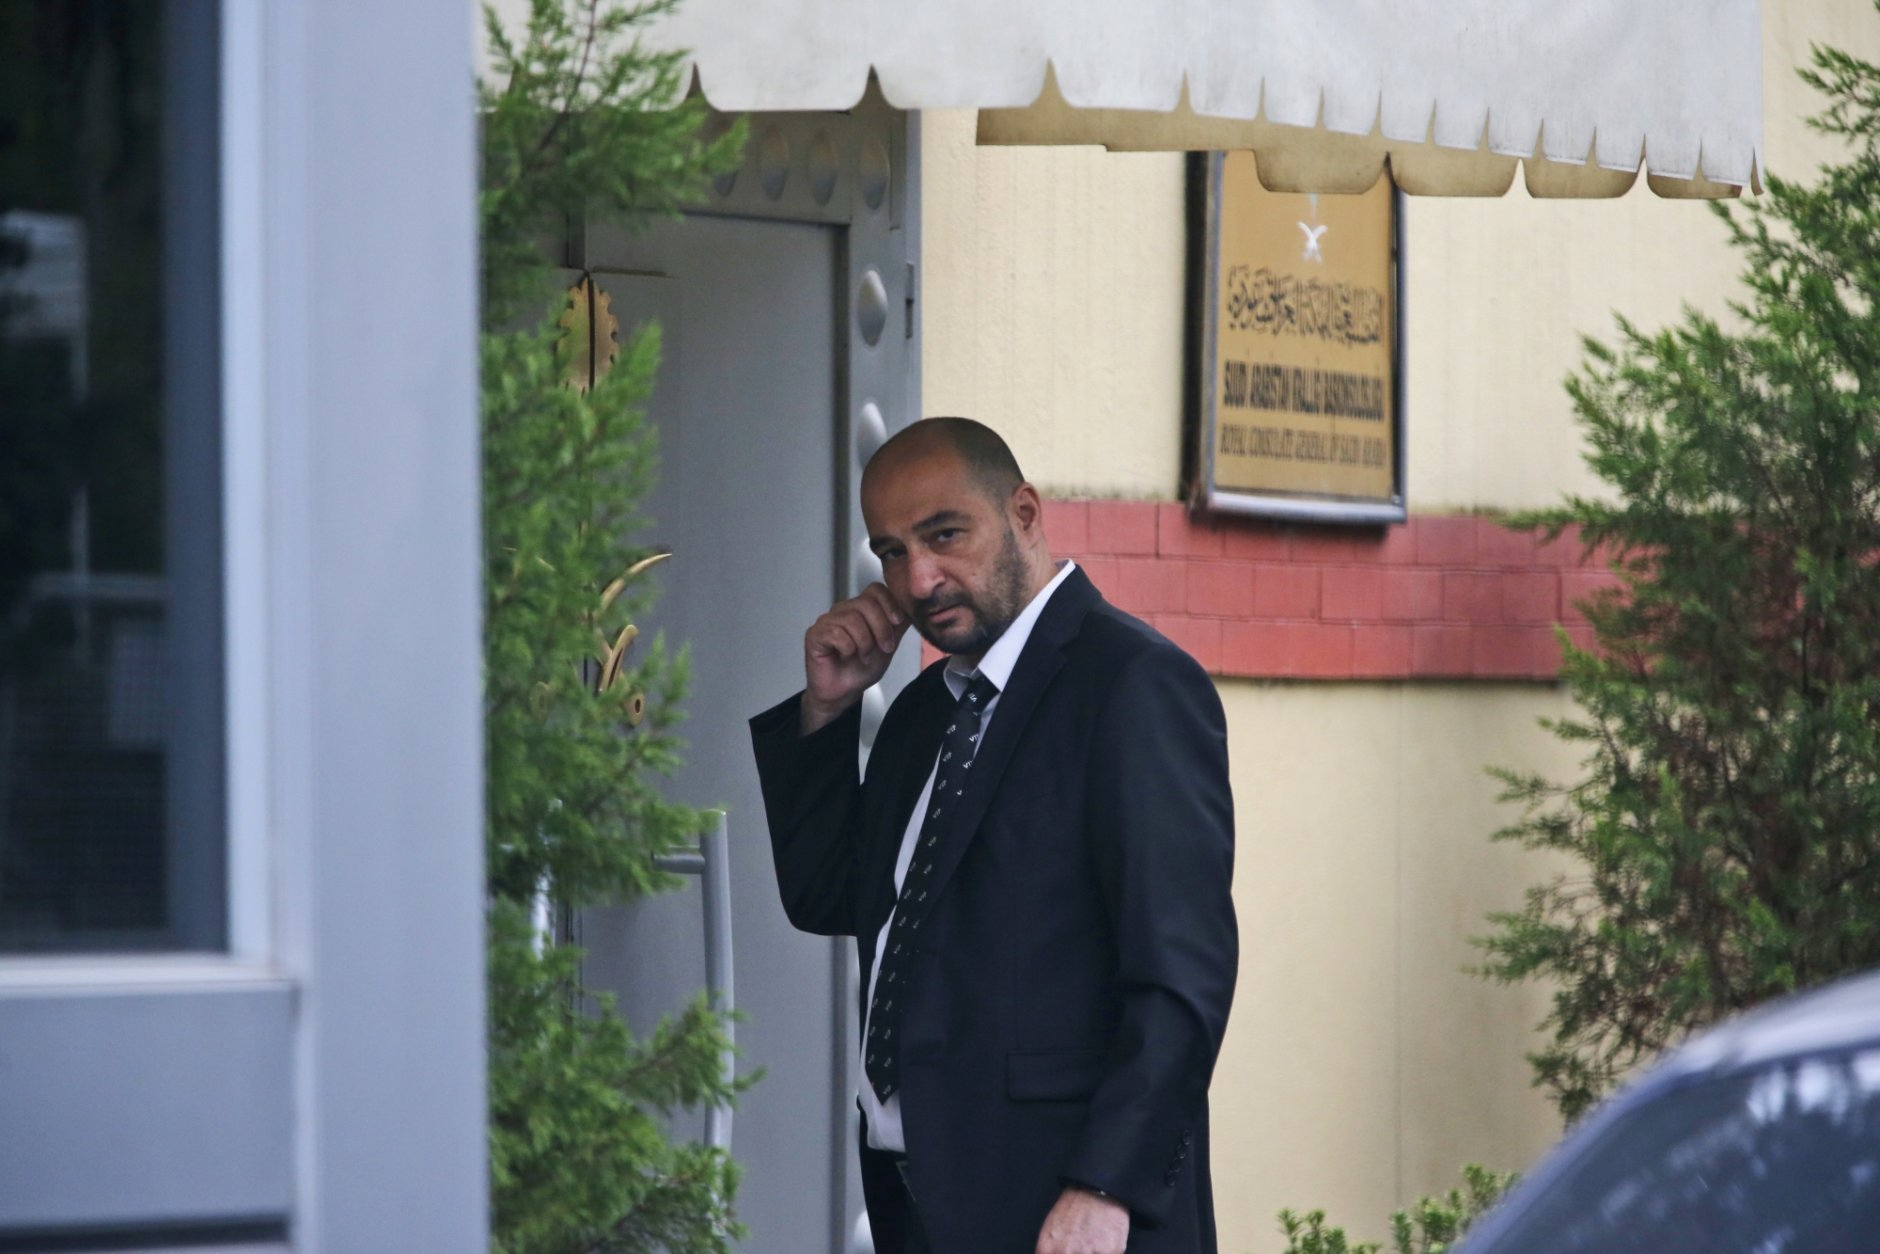 """A security guard walks outside Saudi Arabia's consulate in Istanbul, Saturday, Oct. 20, 2018. Saudi Arabia claims Saudi journalist Jamal Khashoggi died in a """"fistfight"""" in consulate, finally admitting that the writer had been slain at its diplomatic post. The overnight announcements in Saudi state media came more than two weeks after Khashoggi, 59, entered the building for paperwork required to marry his Turkish fiancée, and never came out.(AP Photo/Lefteris Pitarakis)"""